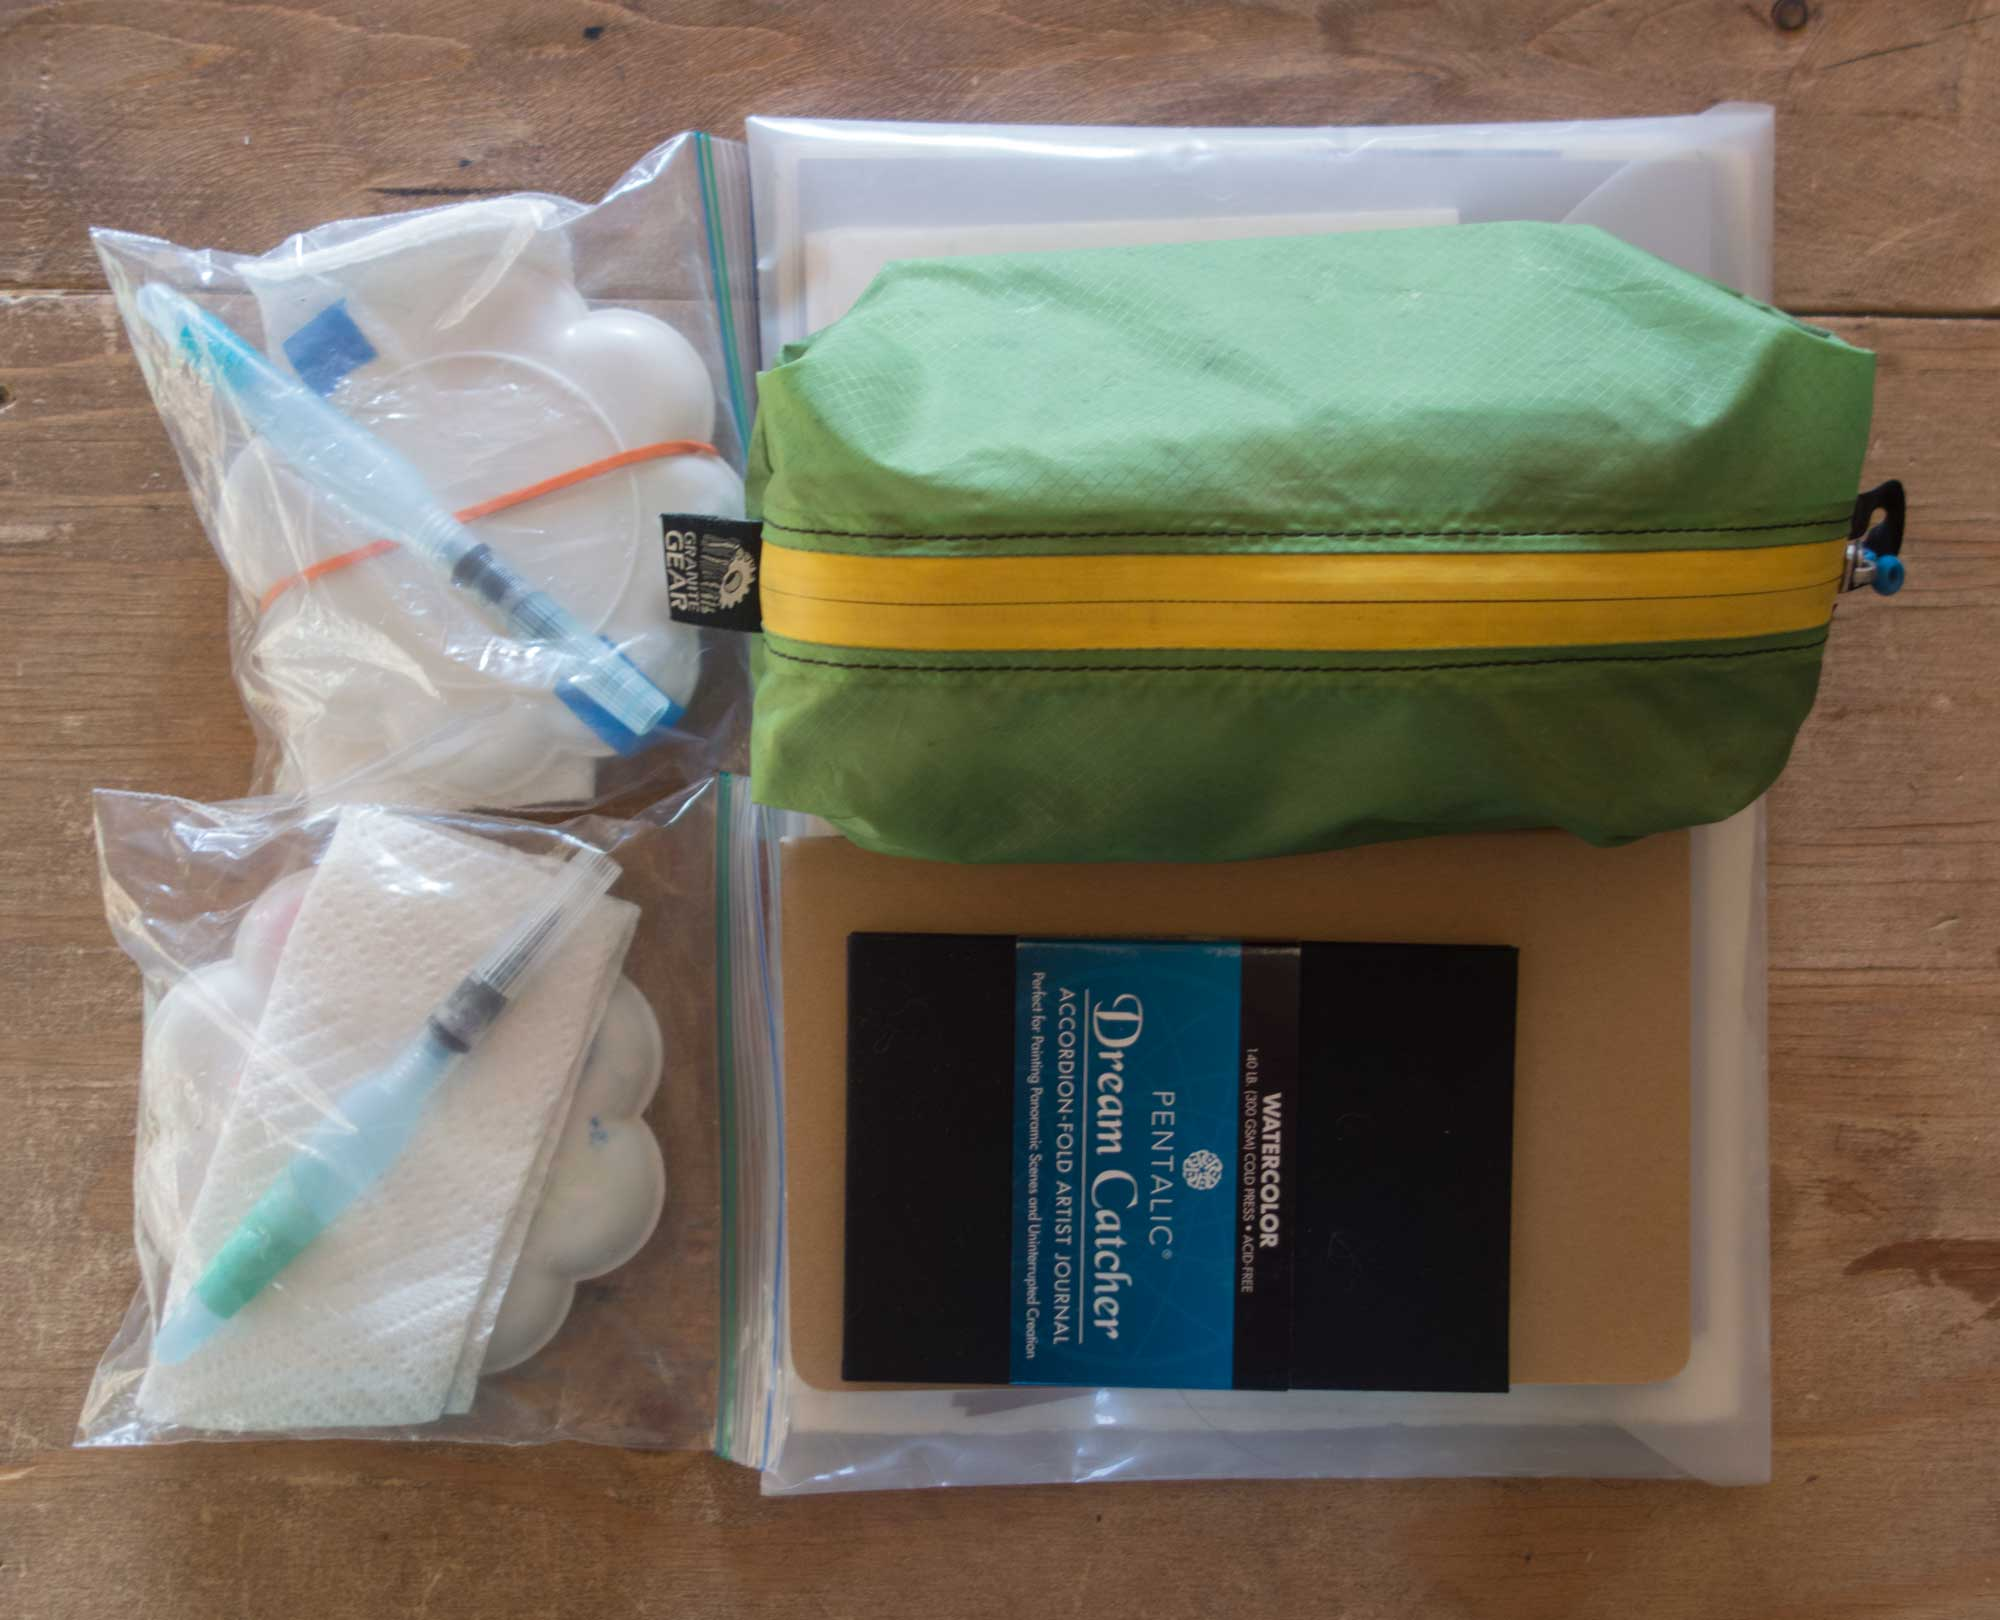 Here are all my supplies ready to go. Did I follow my advice and limit myself? Maybe a little. I tried!